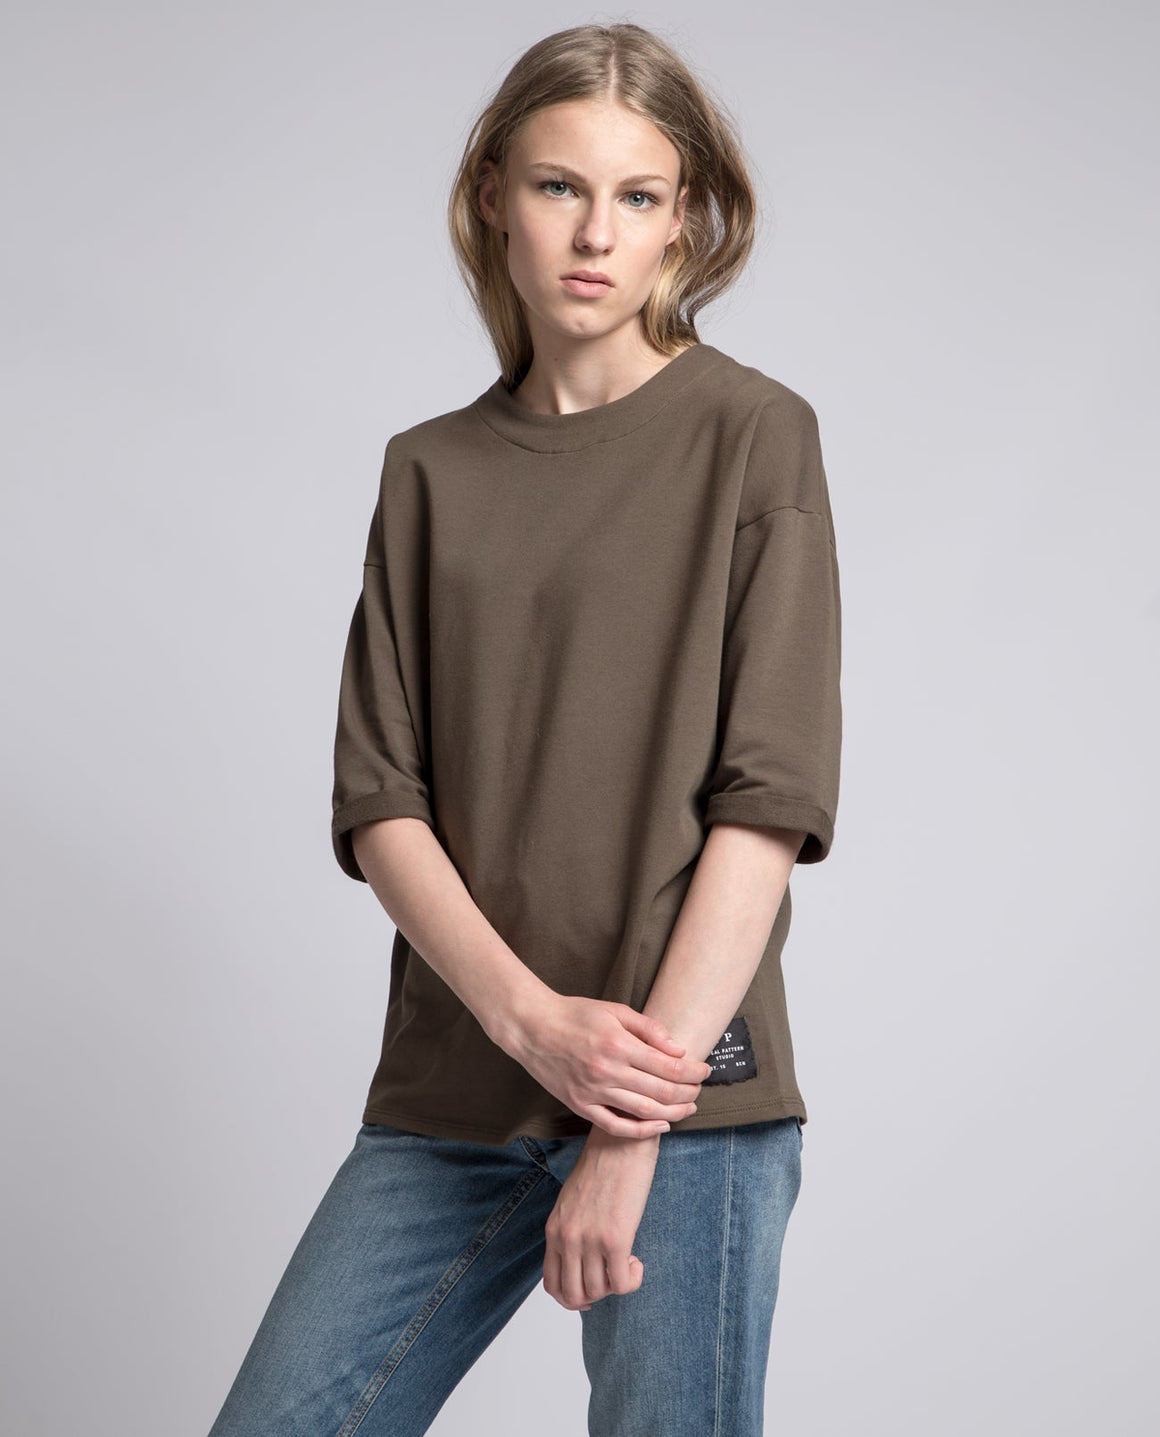 Rolled Sleeves Sweatshirt - Local Pattern  - 1